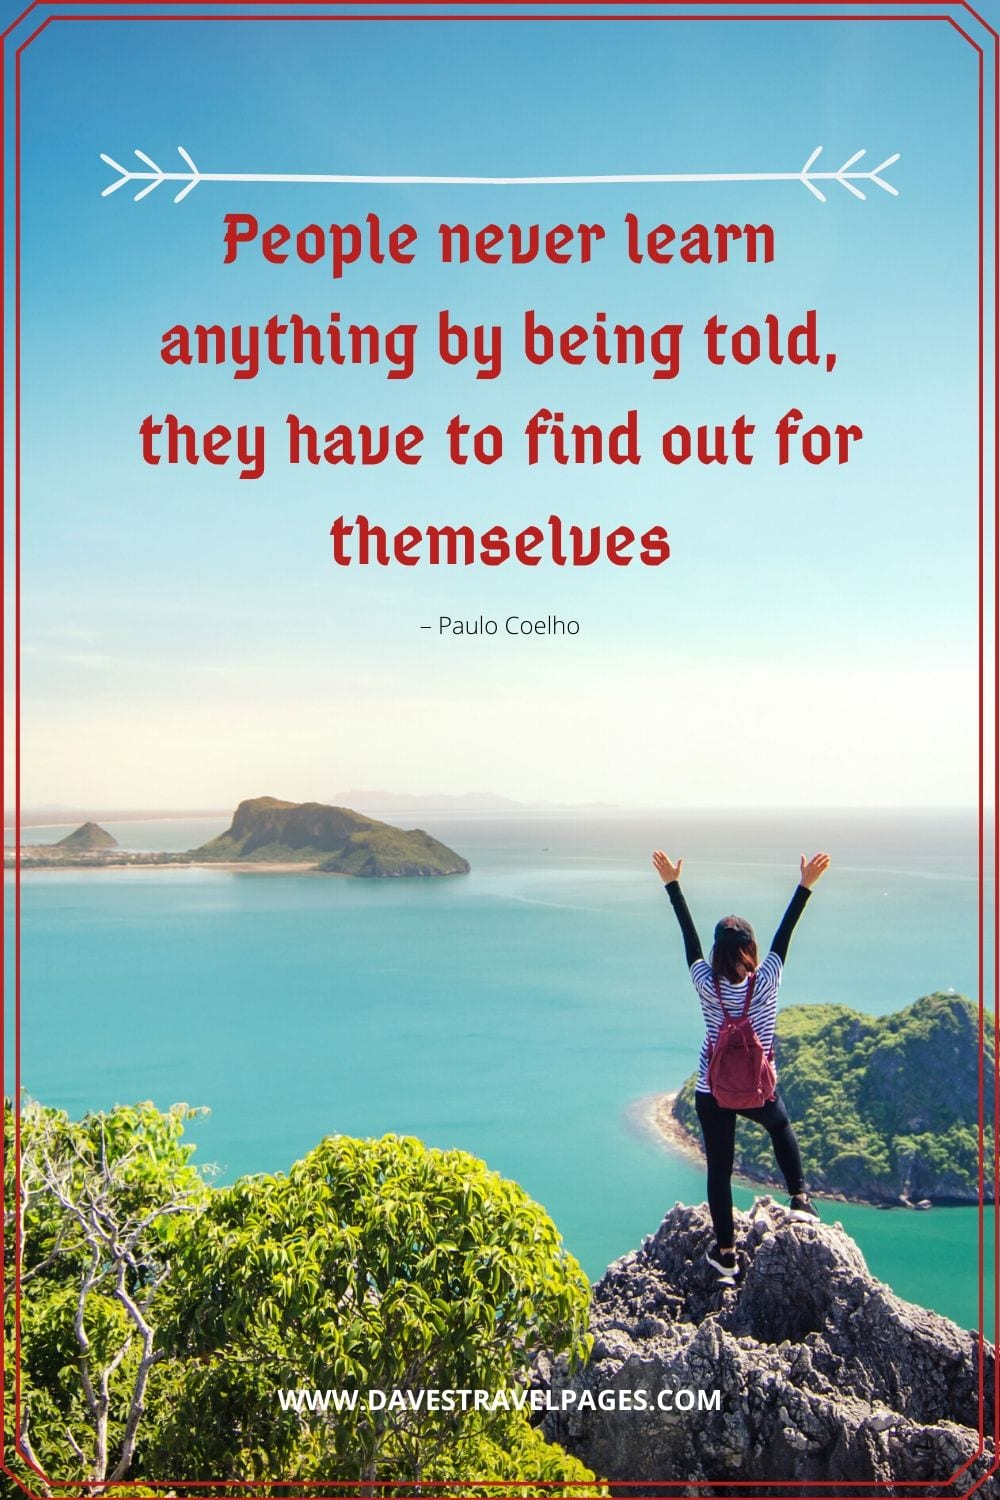 """People never learn anything by being told, they have to find out for themselves."" – Paulo Coelho"